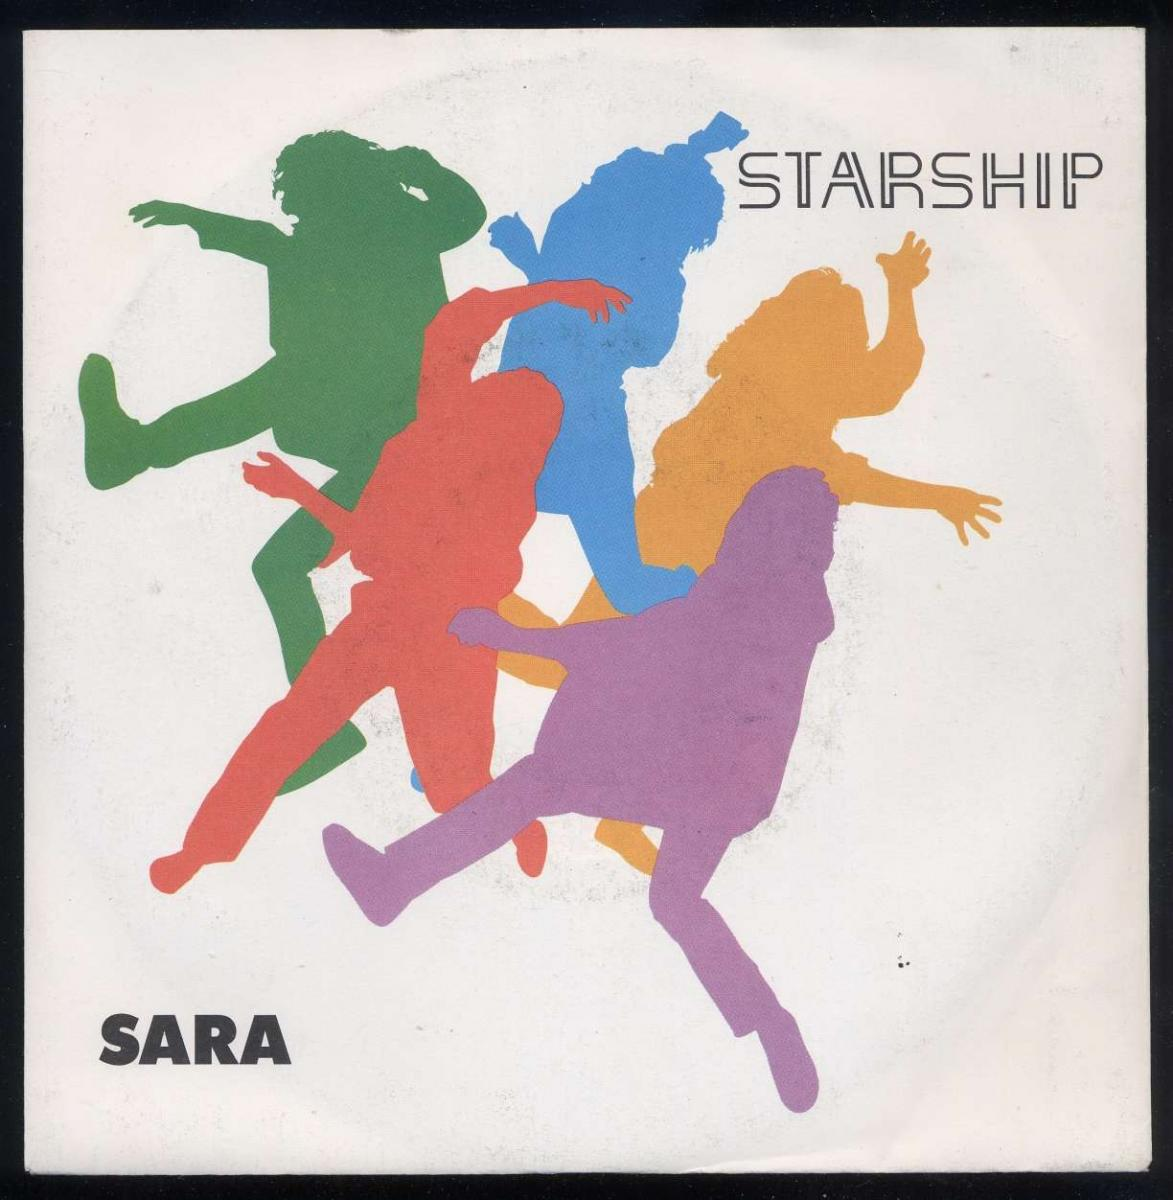 Vinyl-Single <br><b>Starship: <br>Sara / Hearts Of The World (Will Understand) </b><br>Grunt FB49893, (P) 1985 <r>EAN 5012394989378